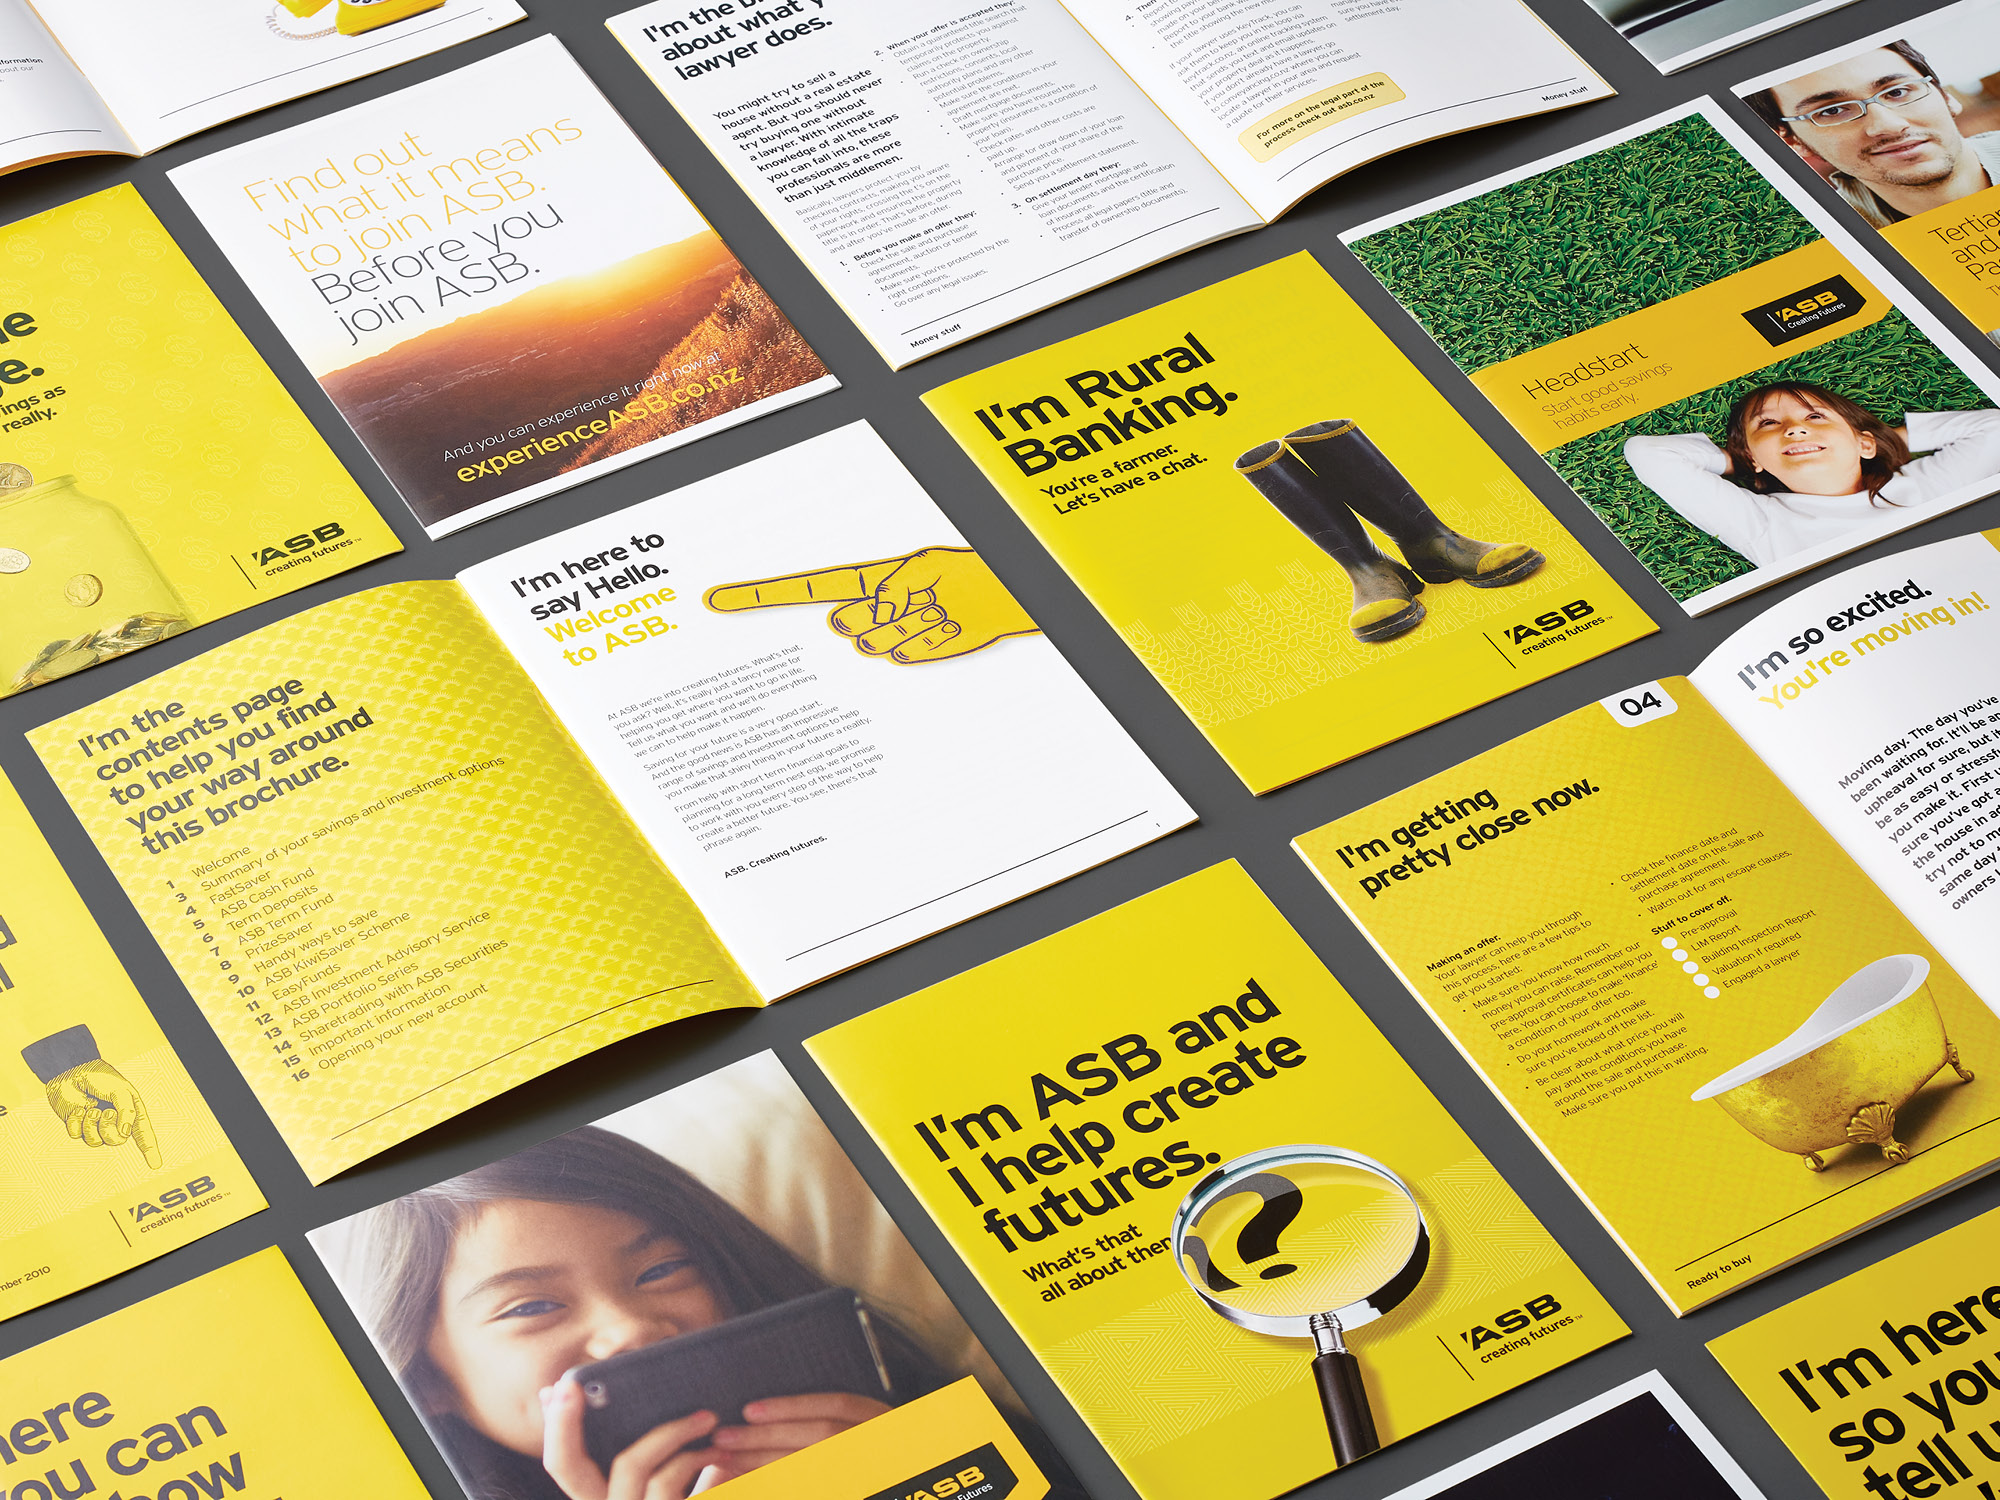 onfire design asb bank branding collateral graphic design 5